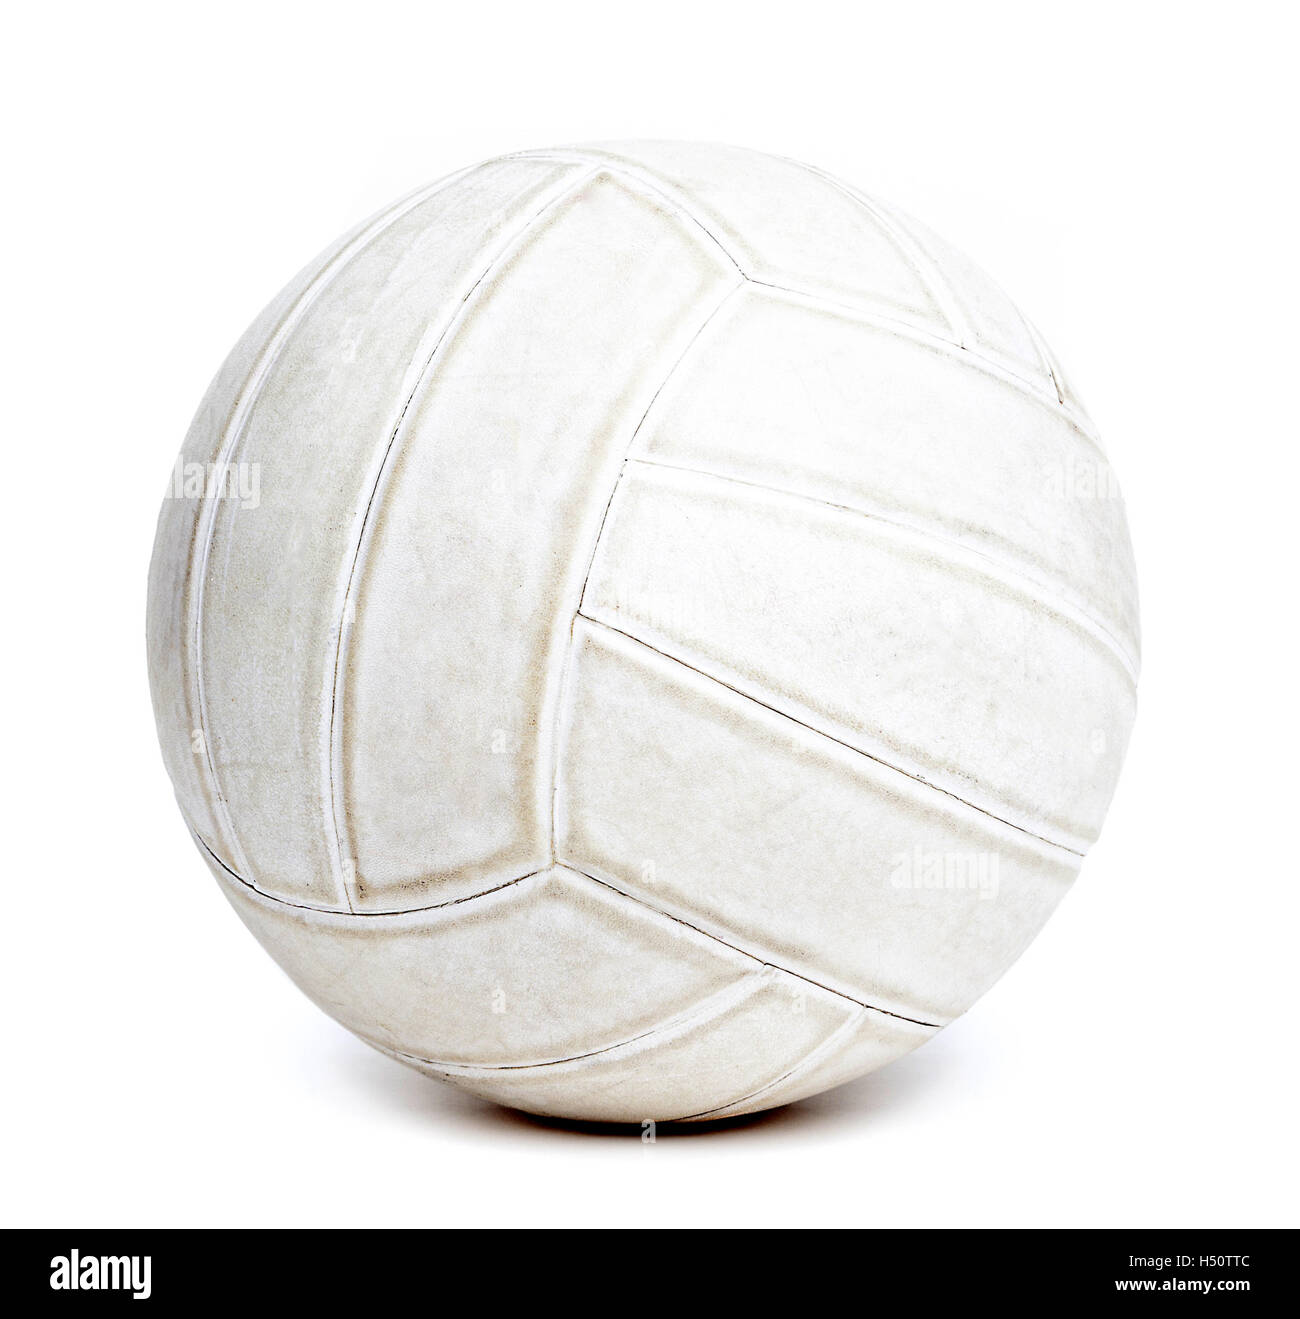 An old rugged and worn out volleyball isolated on white background. - Stock Image